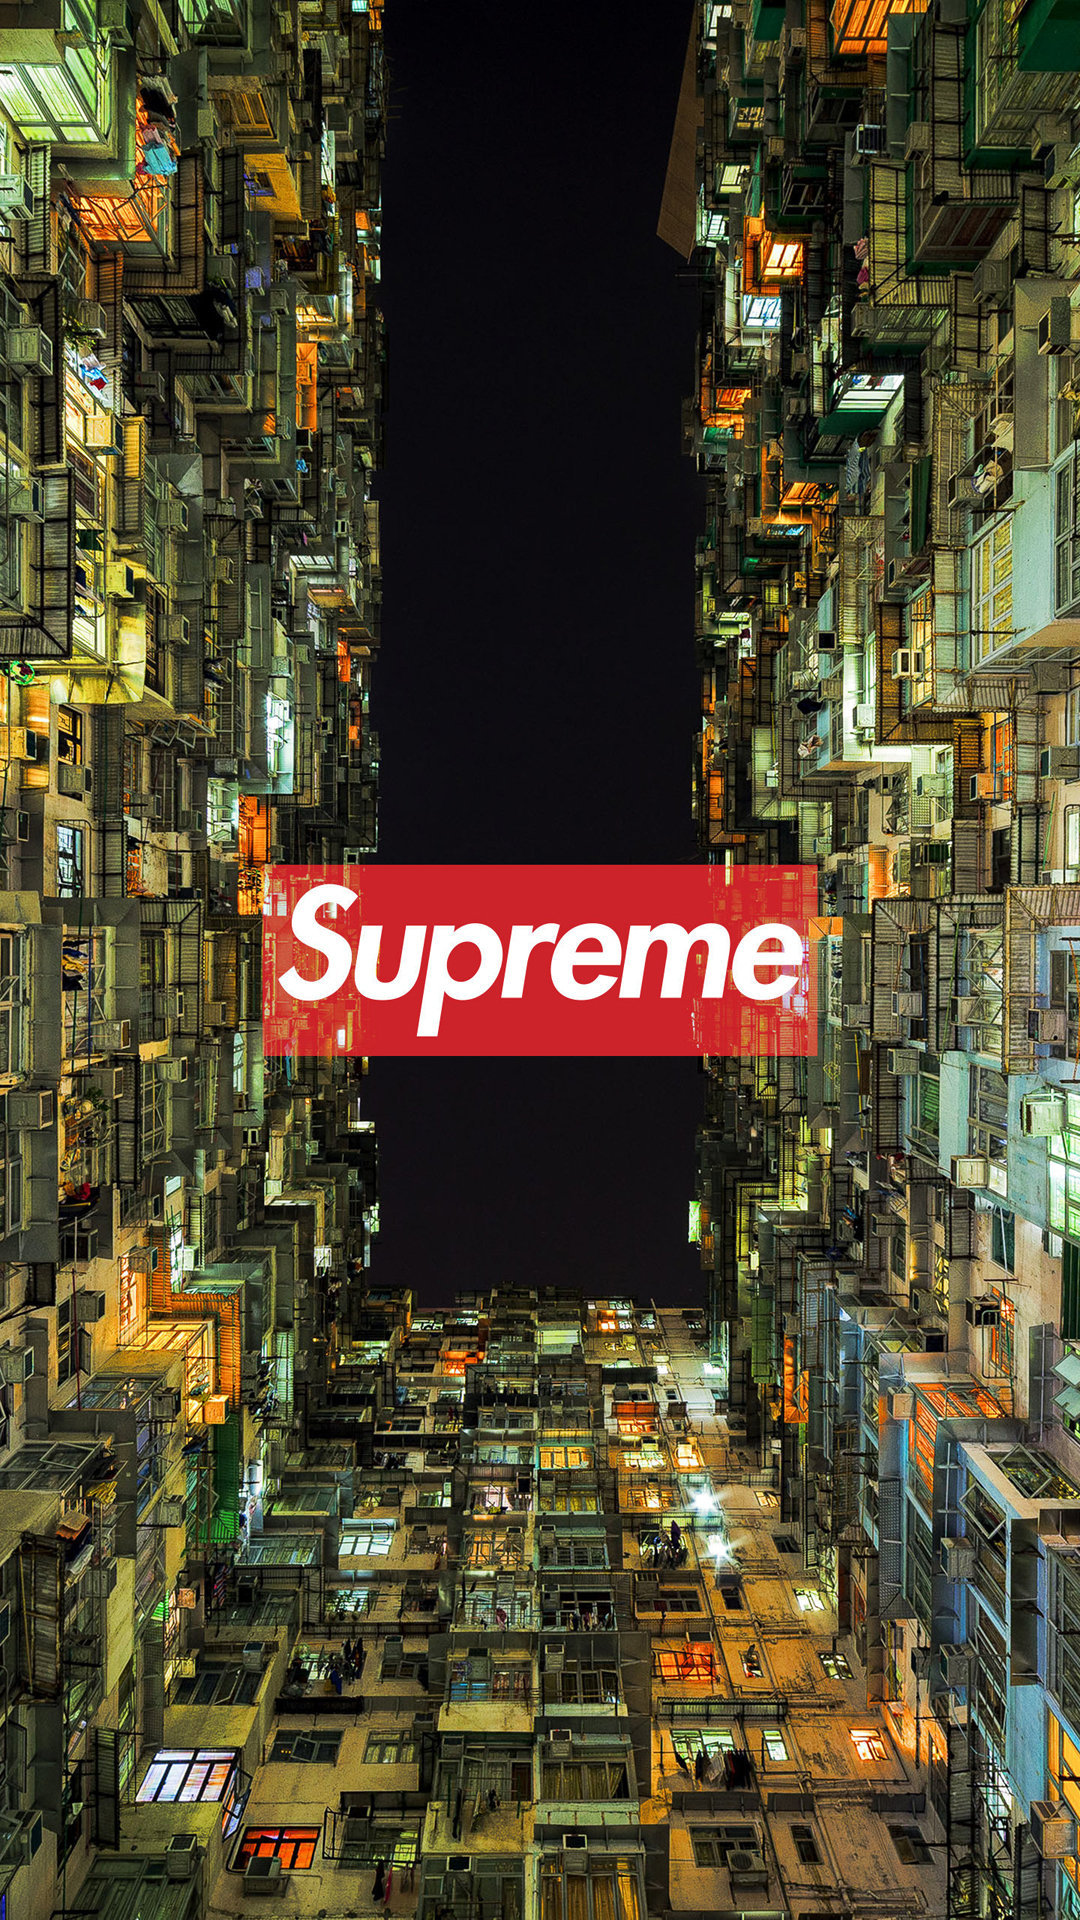 Hong Kong Supreme